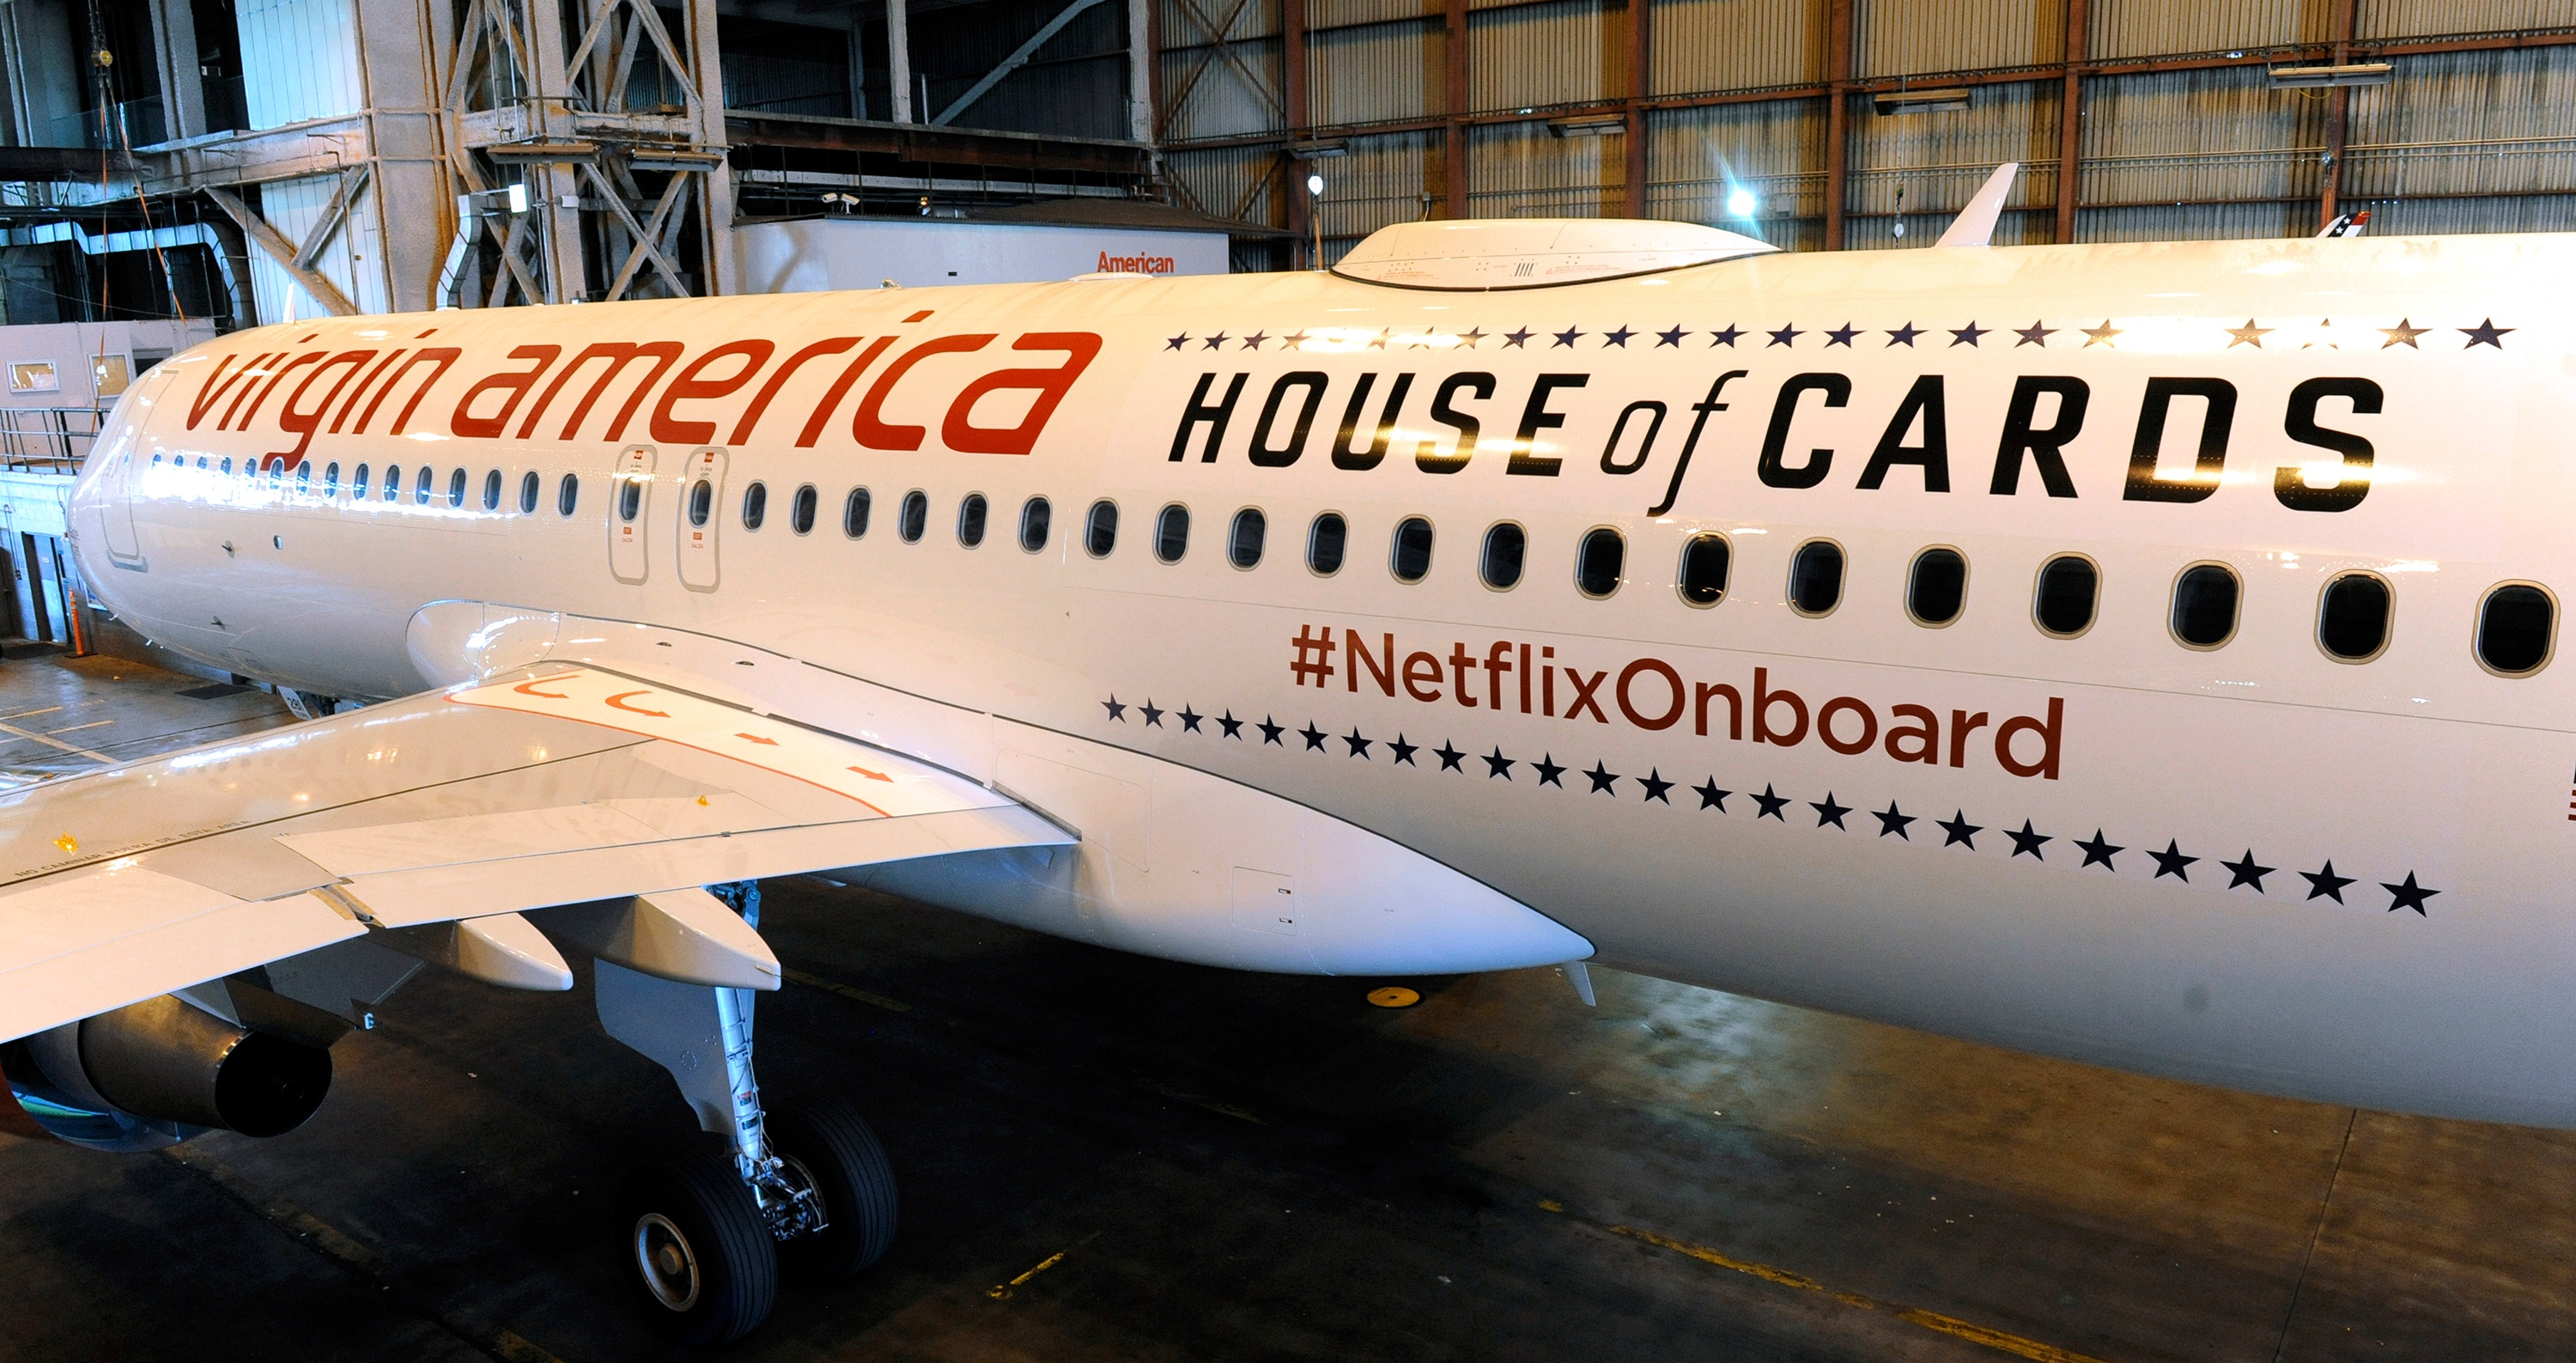 Virgin America Airlines and Netflix partner to offer 'next generation entertainment' on board 10 VA Airbus A320 Aircrafts. As part of their in-flight entertainment, flyers can access high-speed WiFi, and have unlimited access to the entire Netflix catalogue through their personal devices.- Netflix/Virgin America Flight